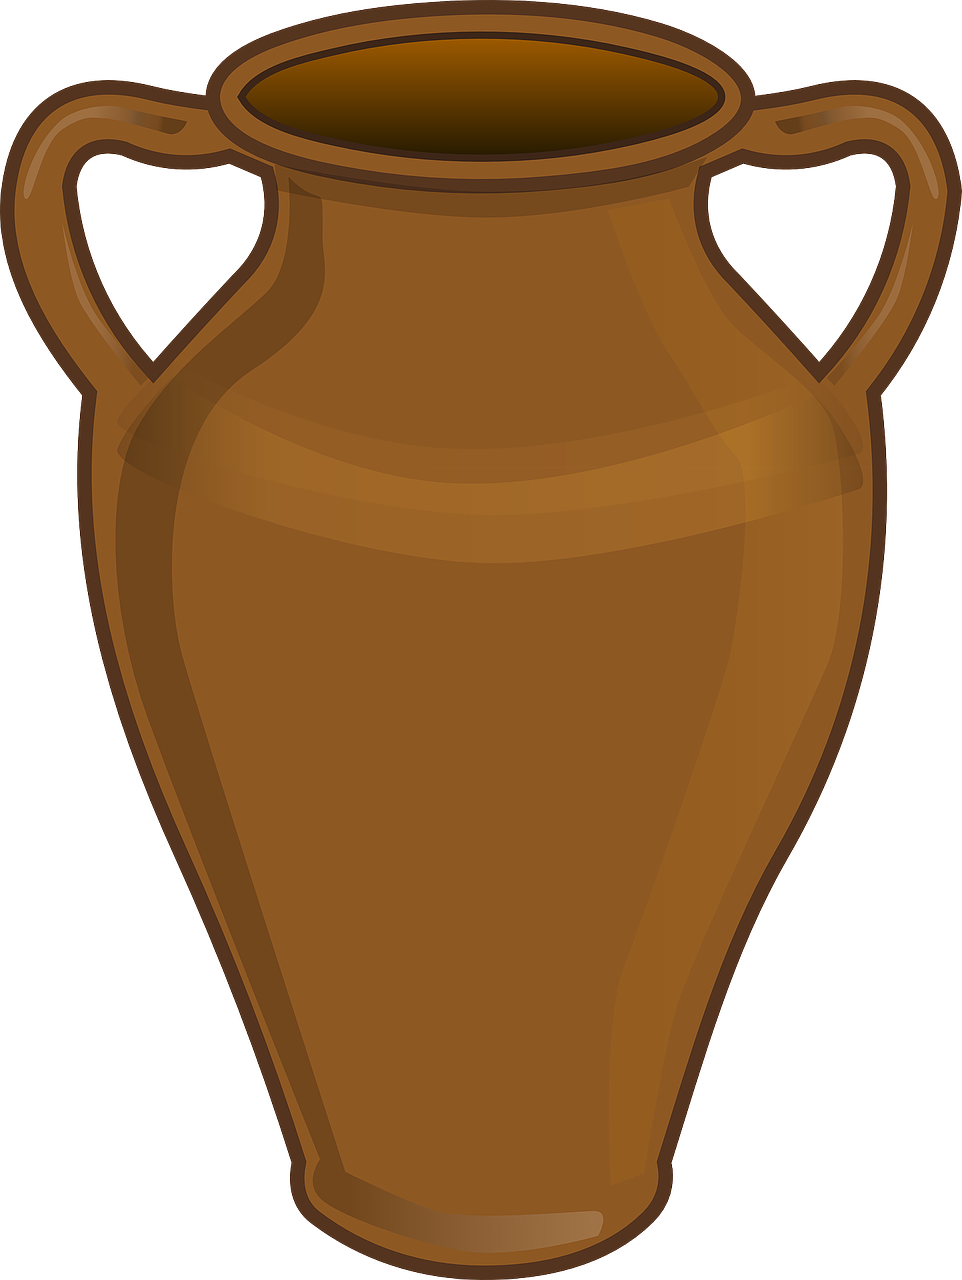 Greek clipart urn greek, Greek urn greek Transparent FREE.